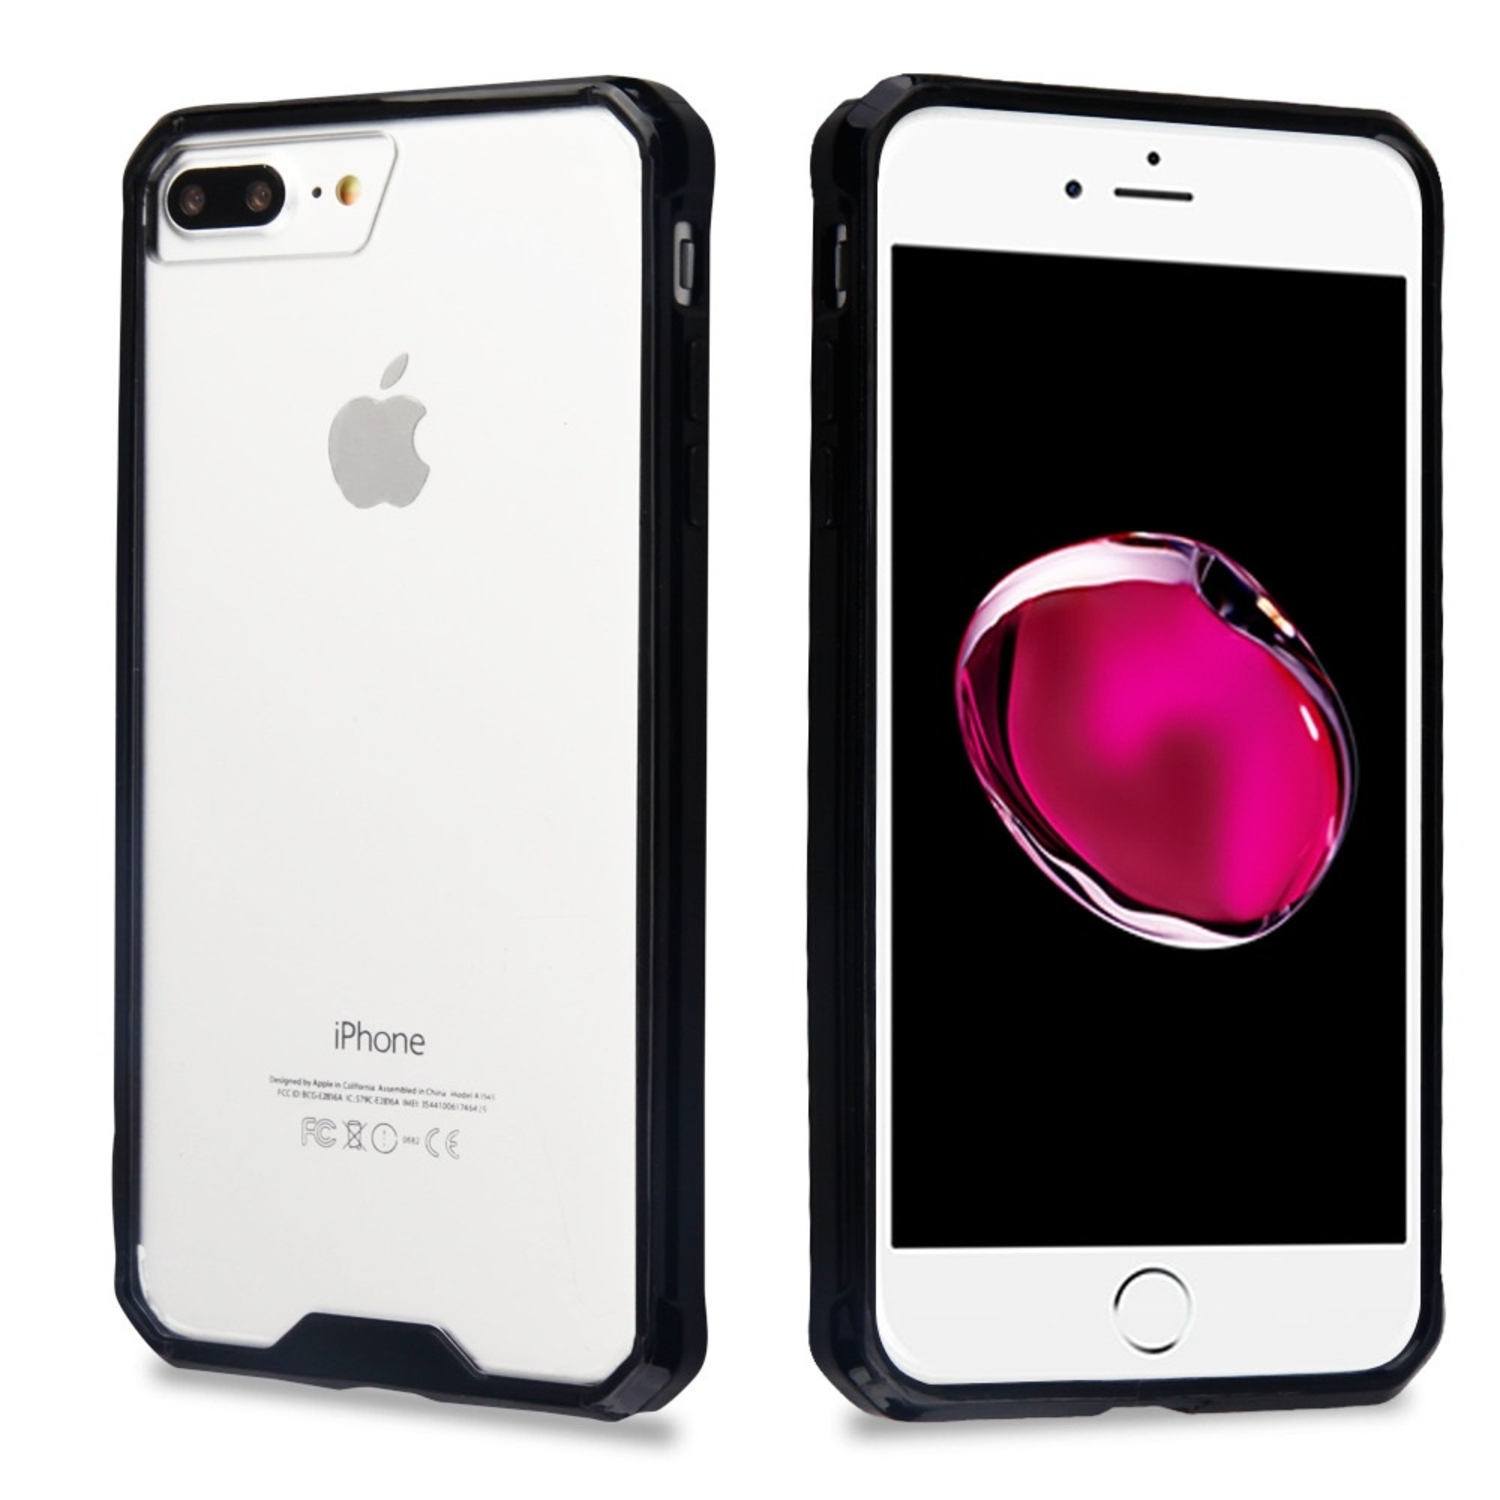 iPhone 8 Plus case, iPhone 7 Plus case, by Insten Highly Transparent Sturdy Gummy Hard PC Case Cover For Apple iPhone 8 Plus / iPhone 7 Plus - Clear/Black